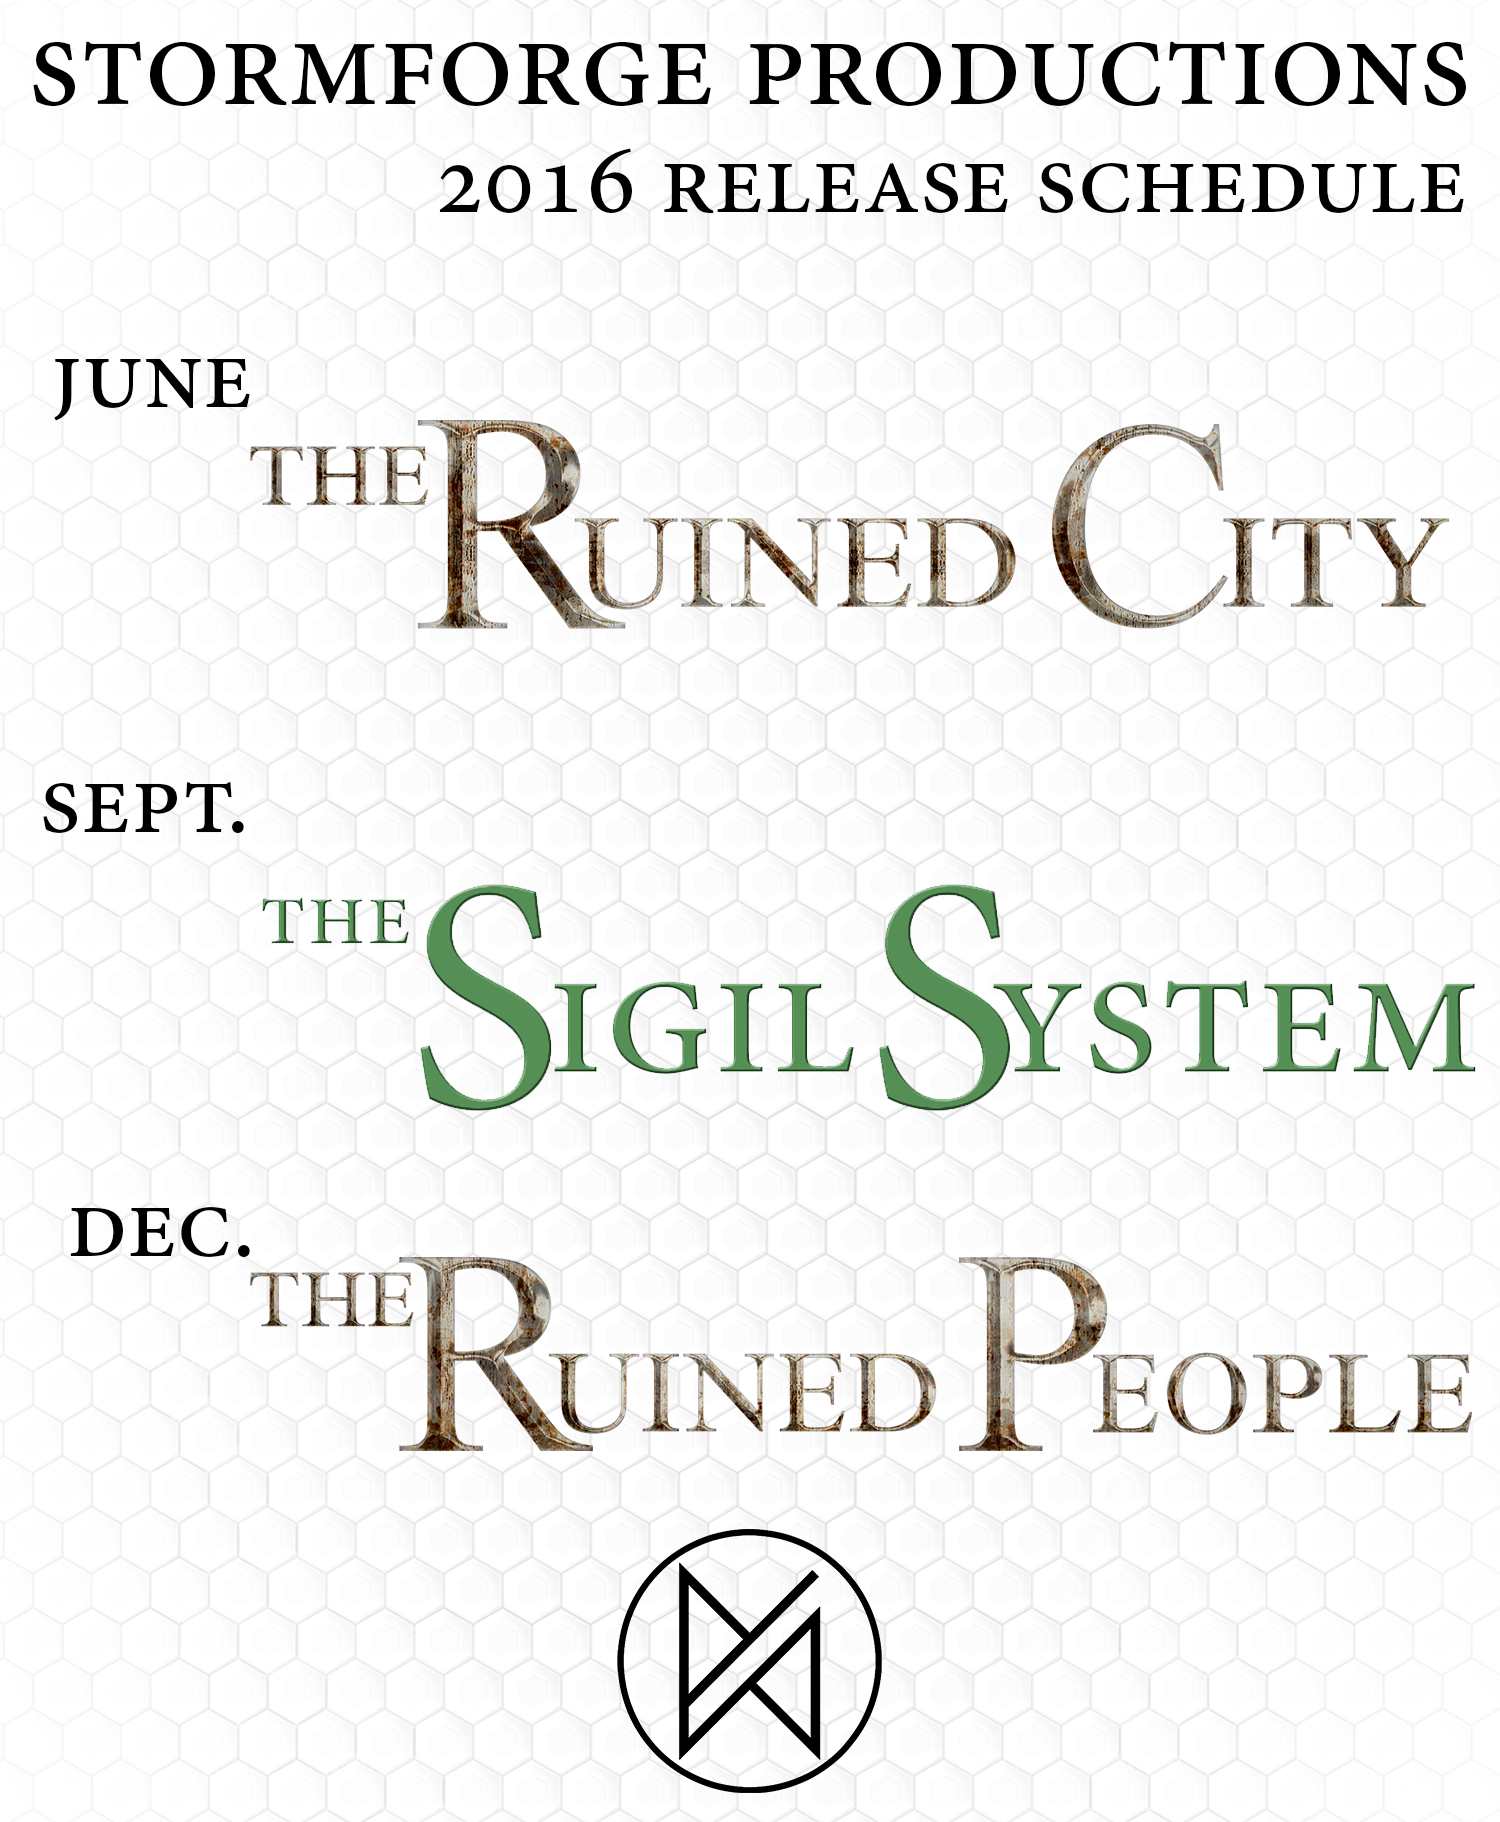 The 2016 Release Schedule